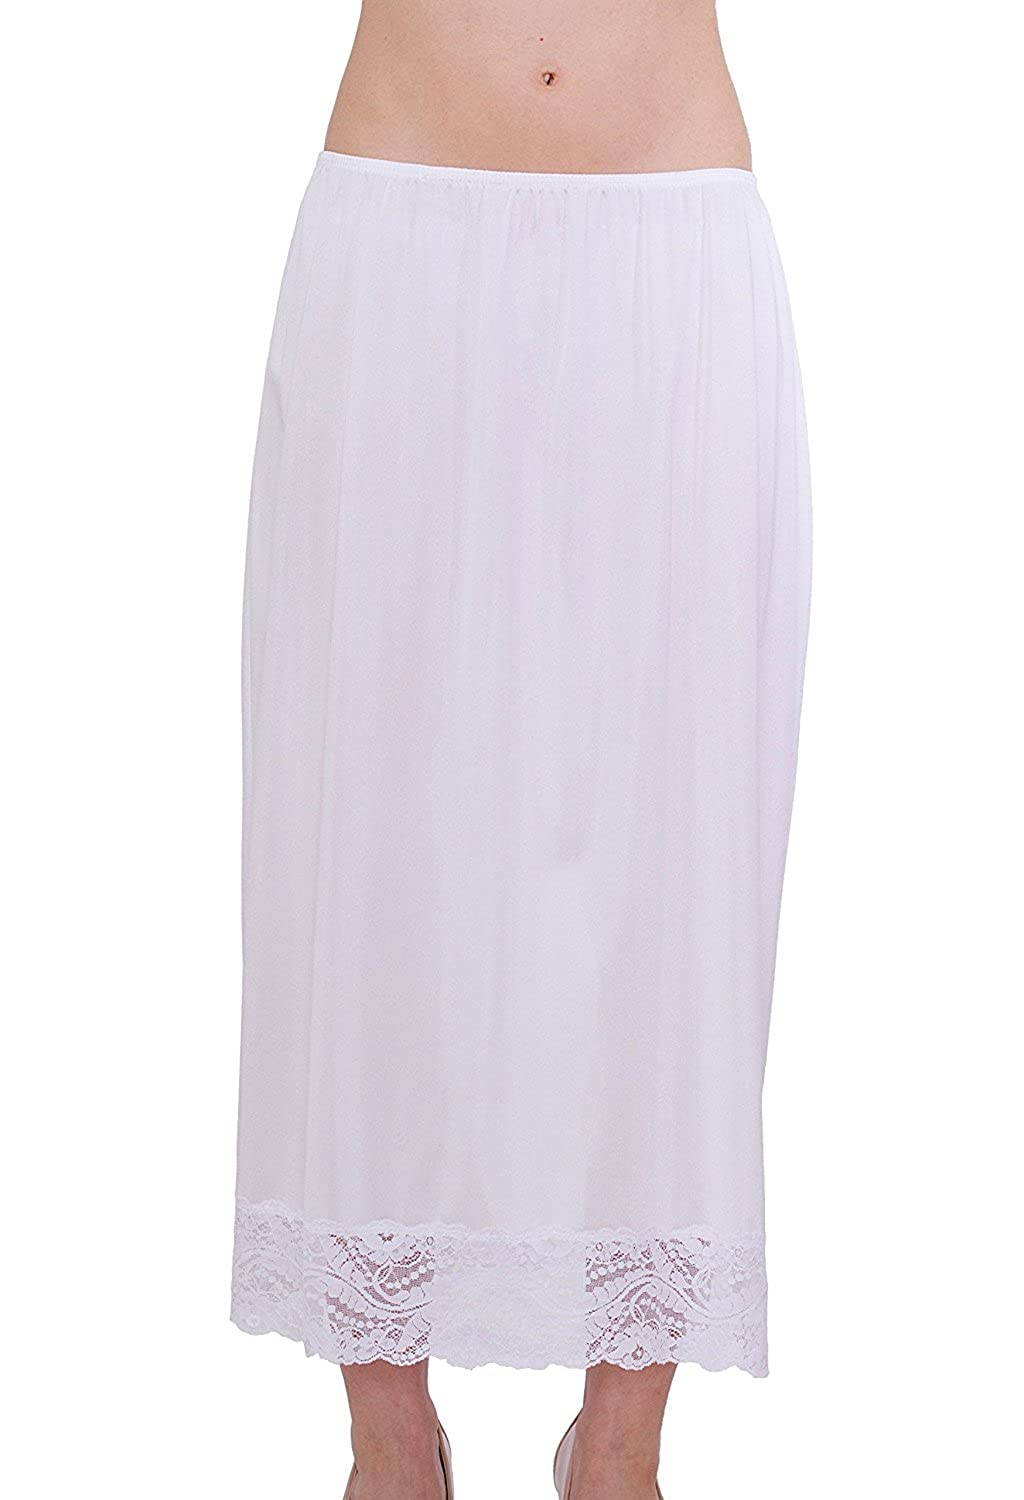 Under Moments Maxi, Half Slip Vintage Style 32 with All Around Lace UM2453